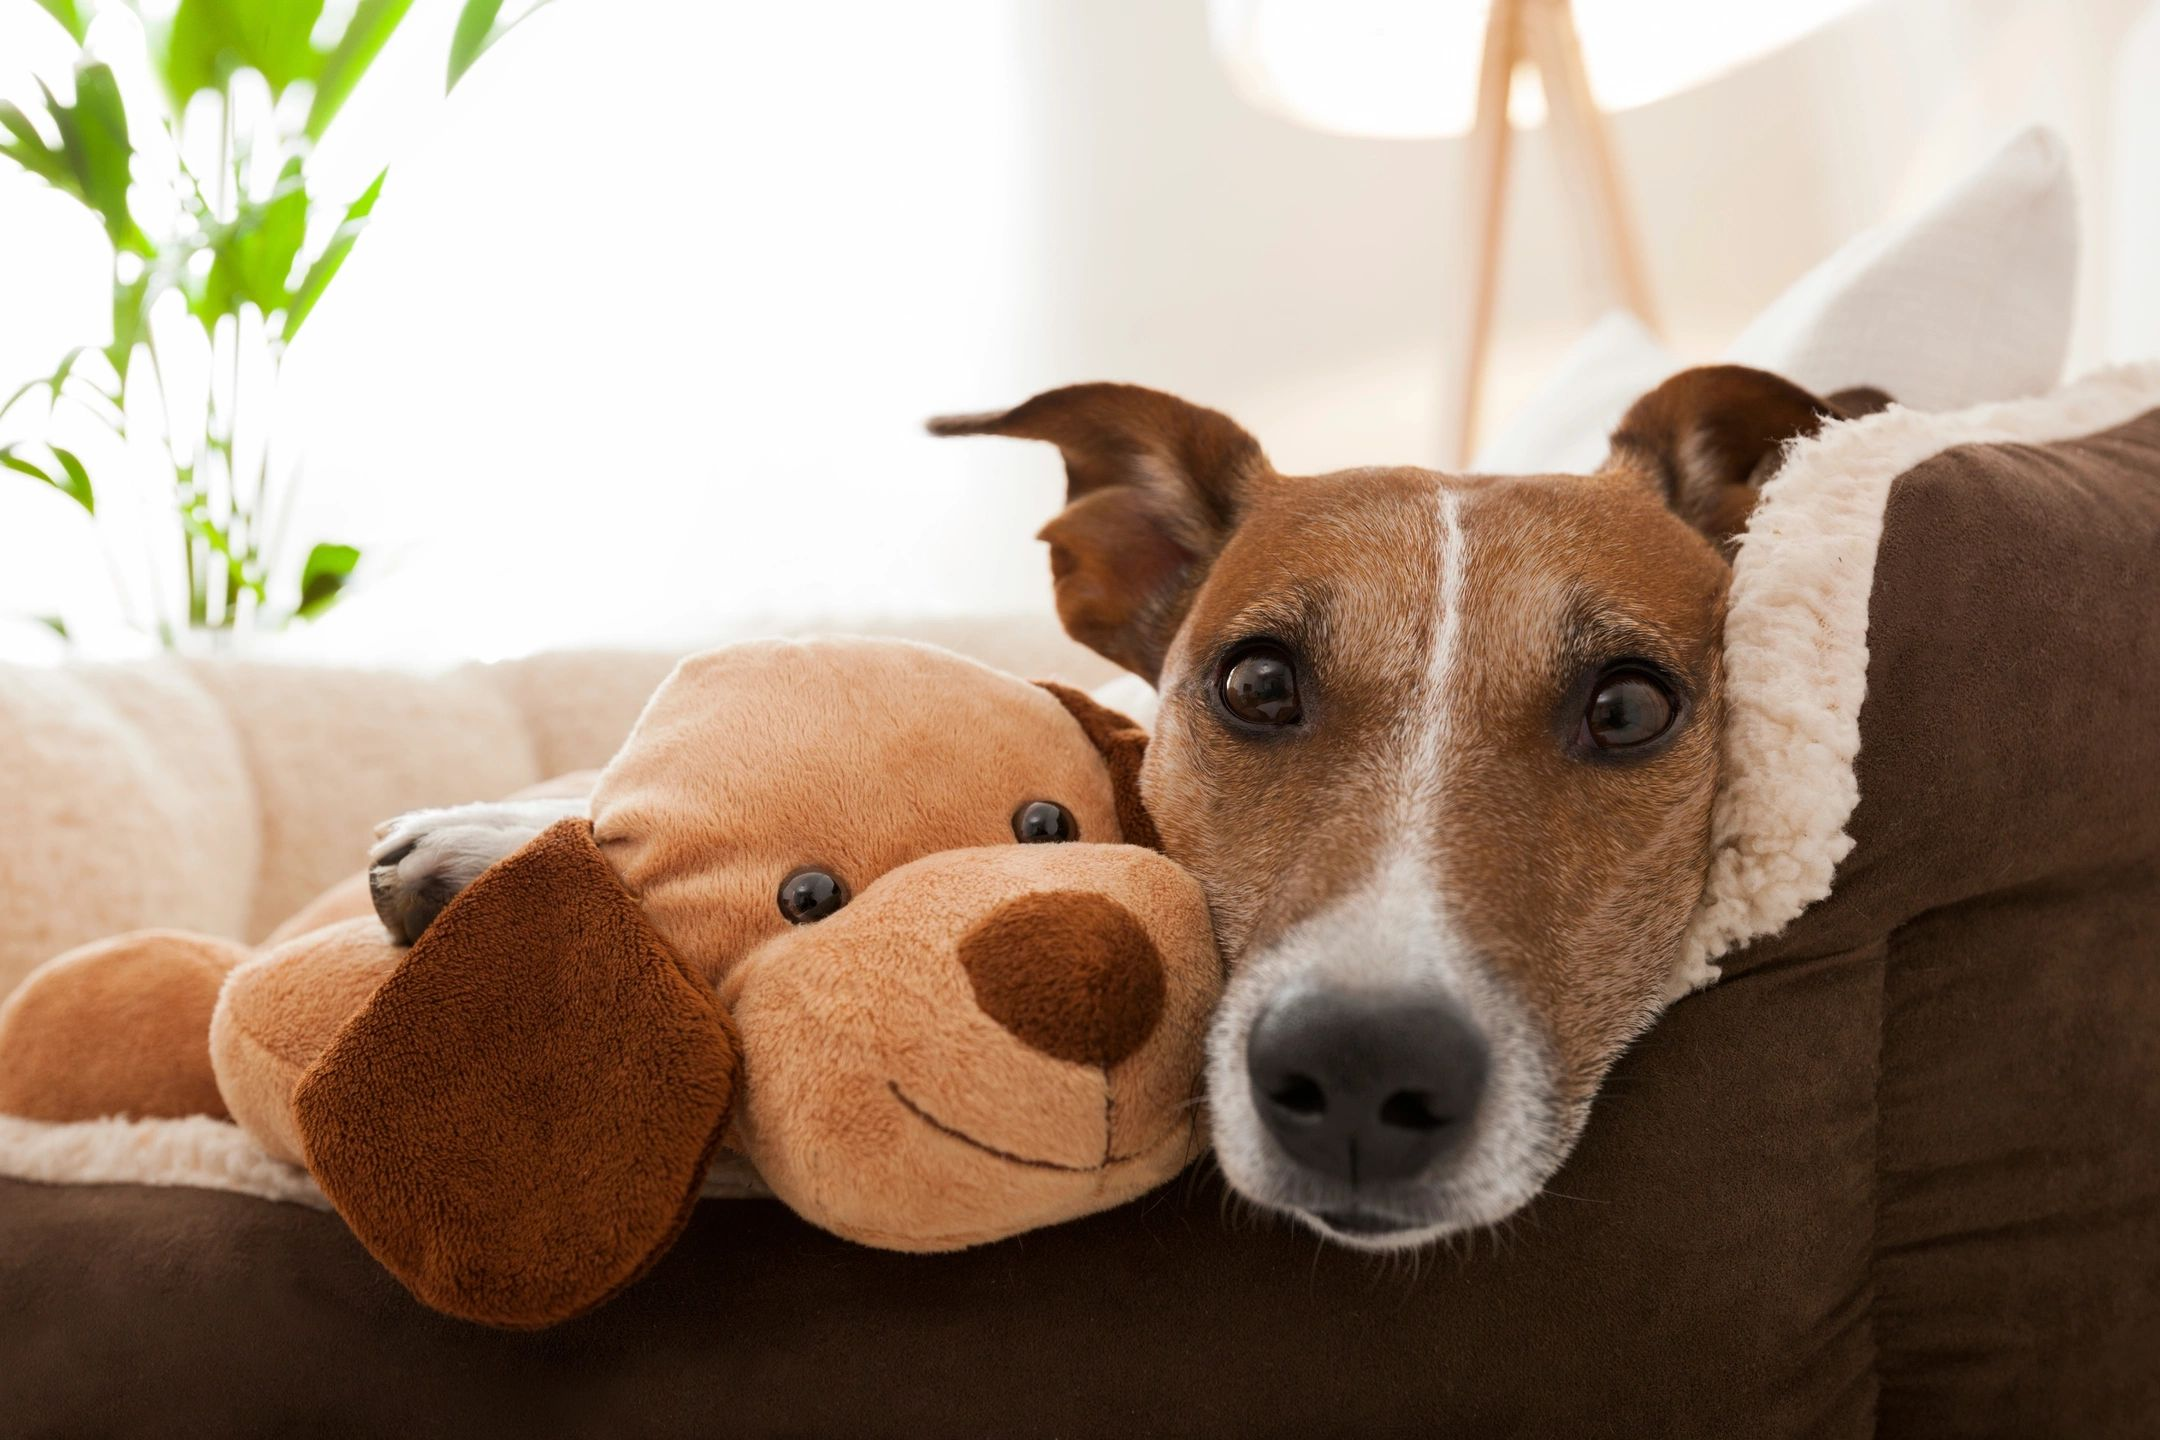 Dog and Cuddly Toy